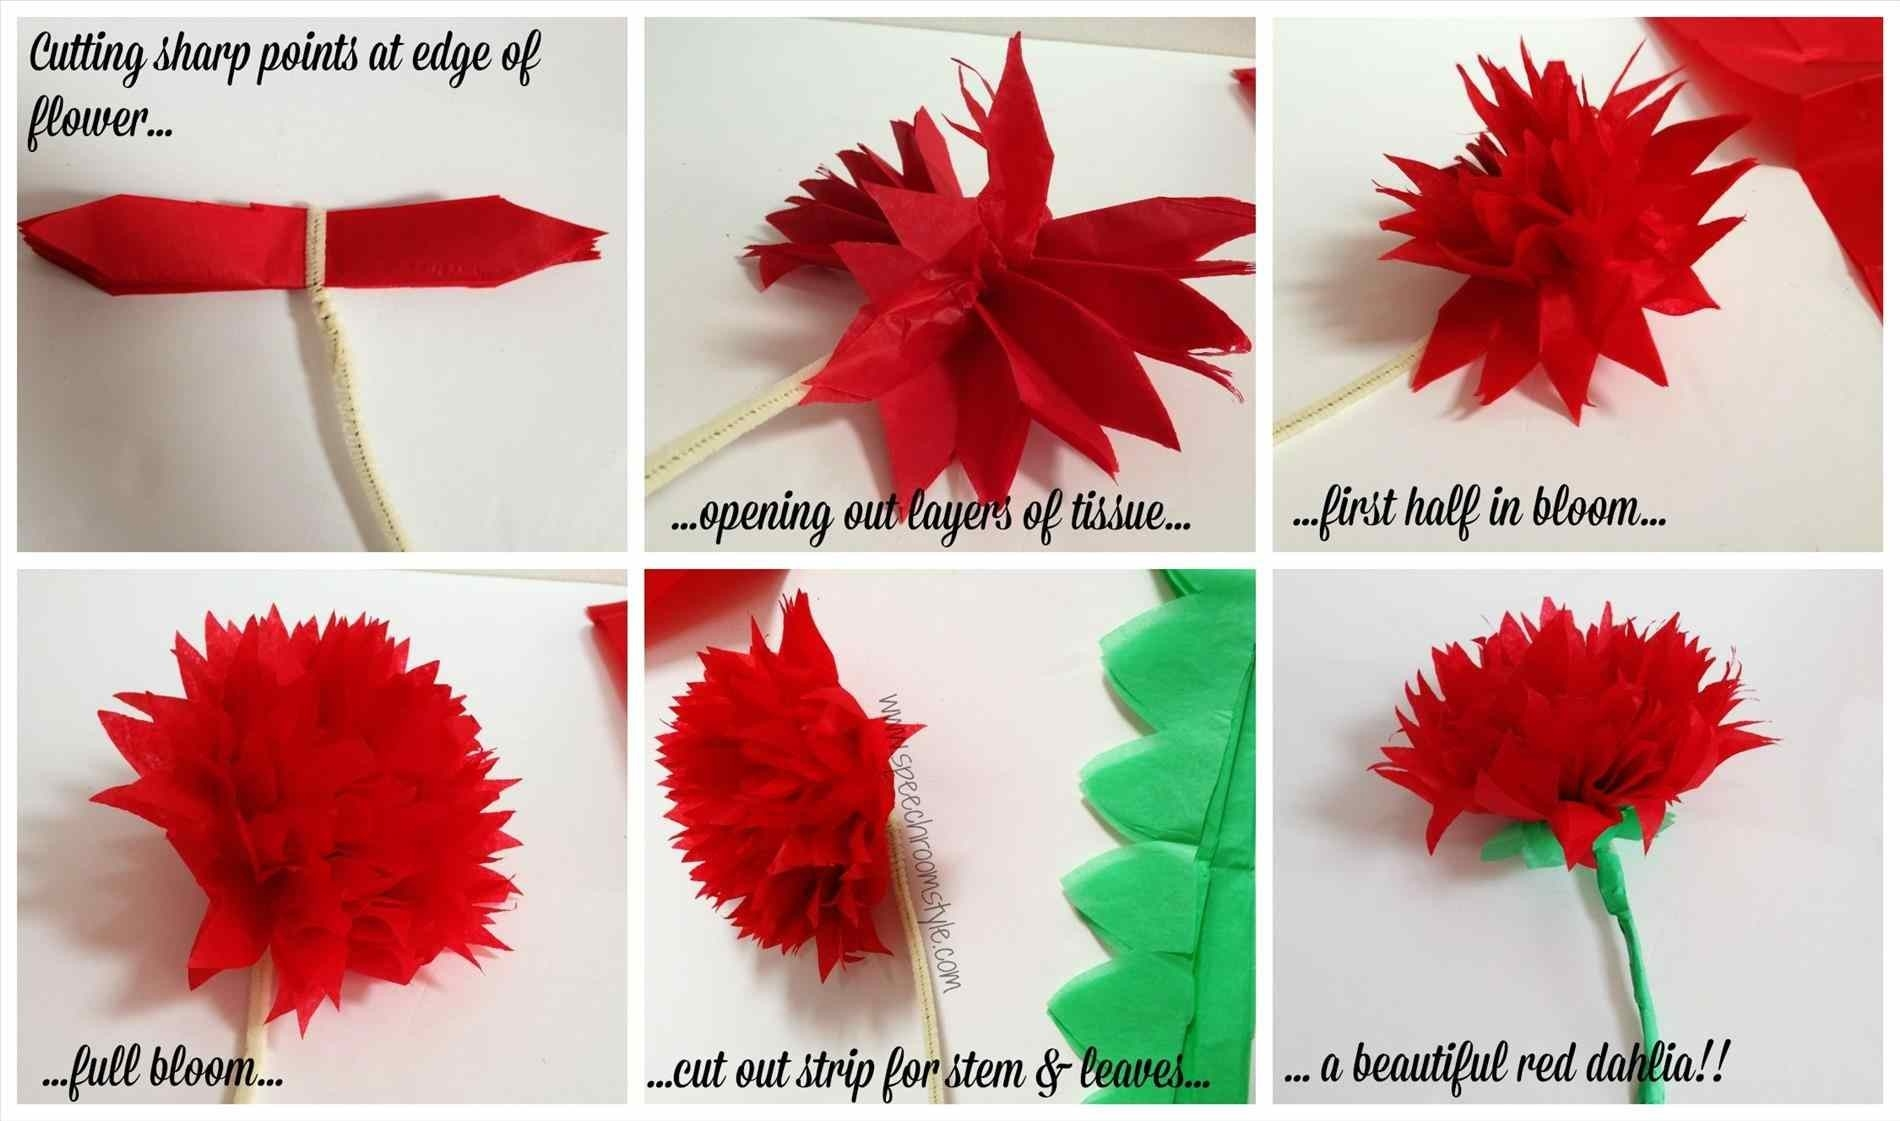 Image Collections With Paper Craft Ideas For Decoration Step By within Paper Craft Ideas For Decoration Step By Step 27460